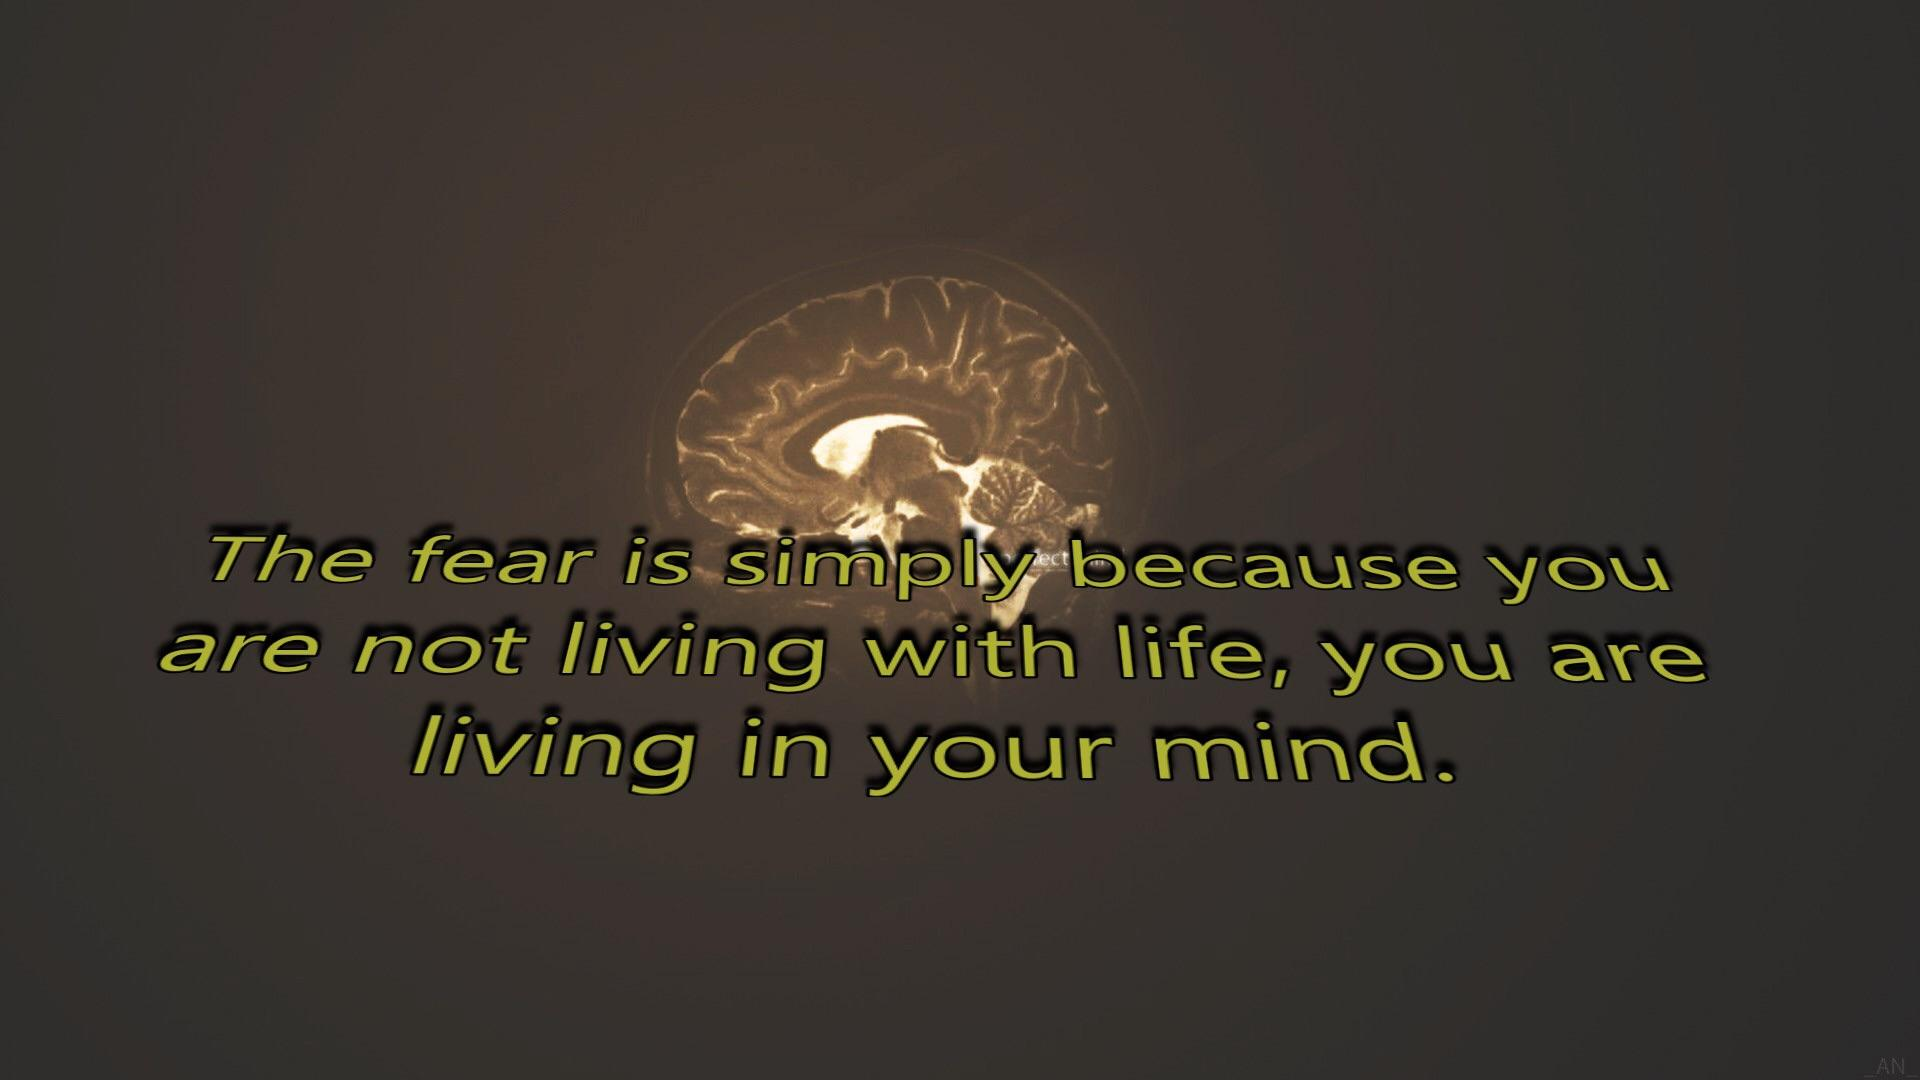 The fear is simply because you are not living with life, you are living in your mind. (Unknown) (1920×1080)